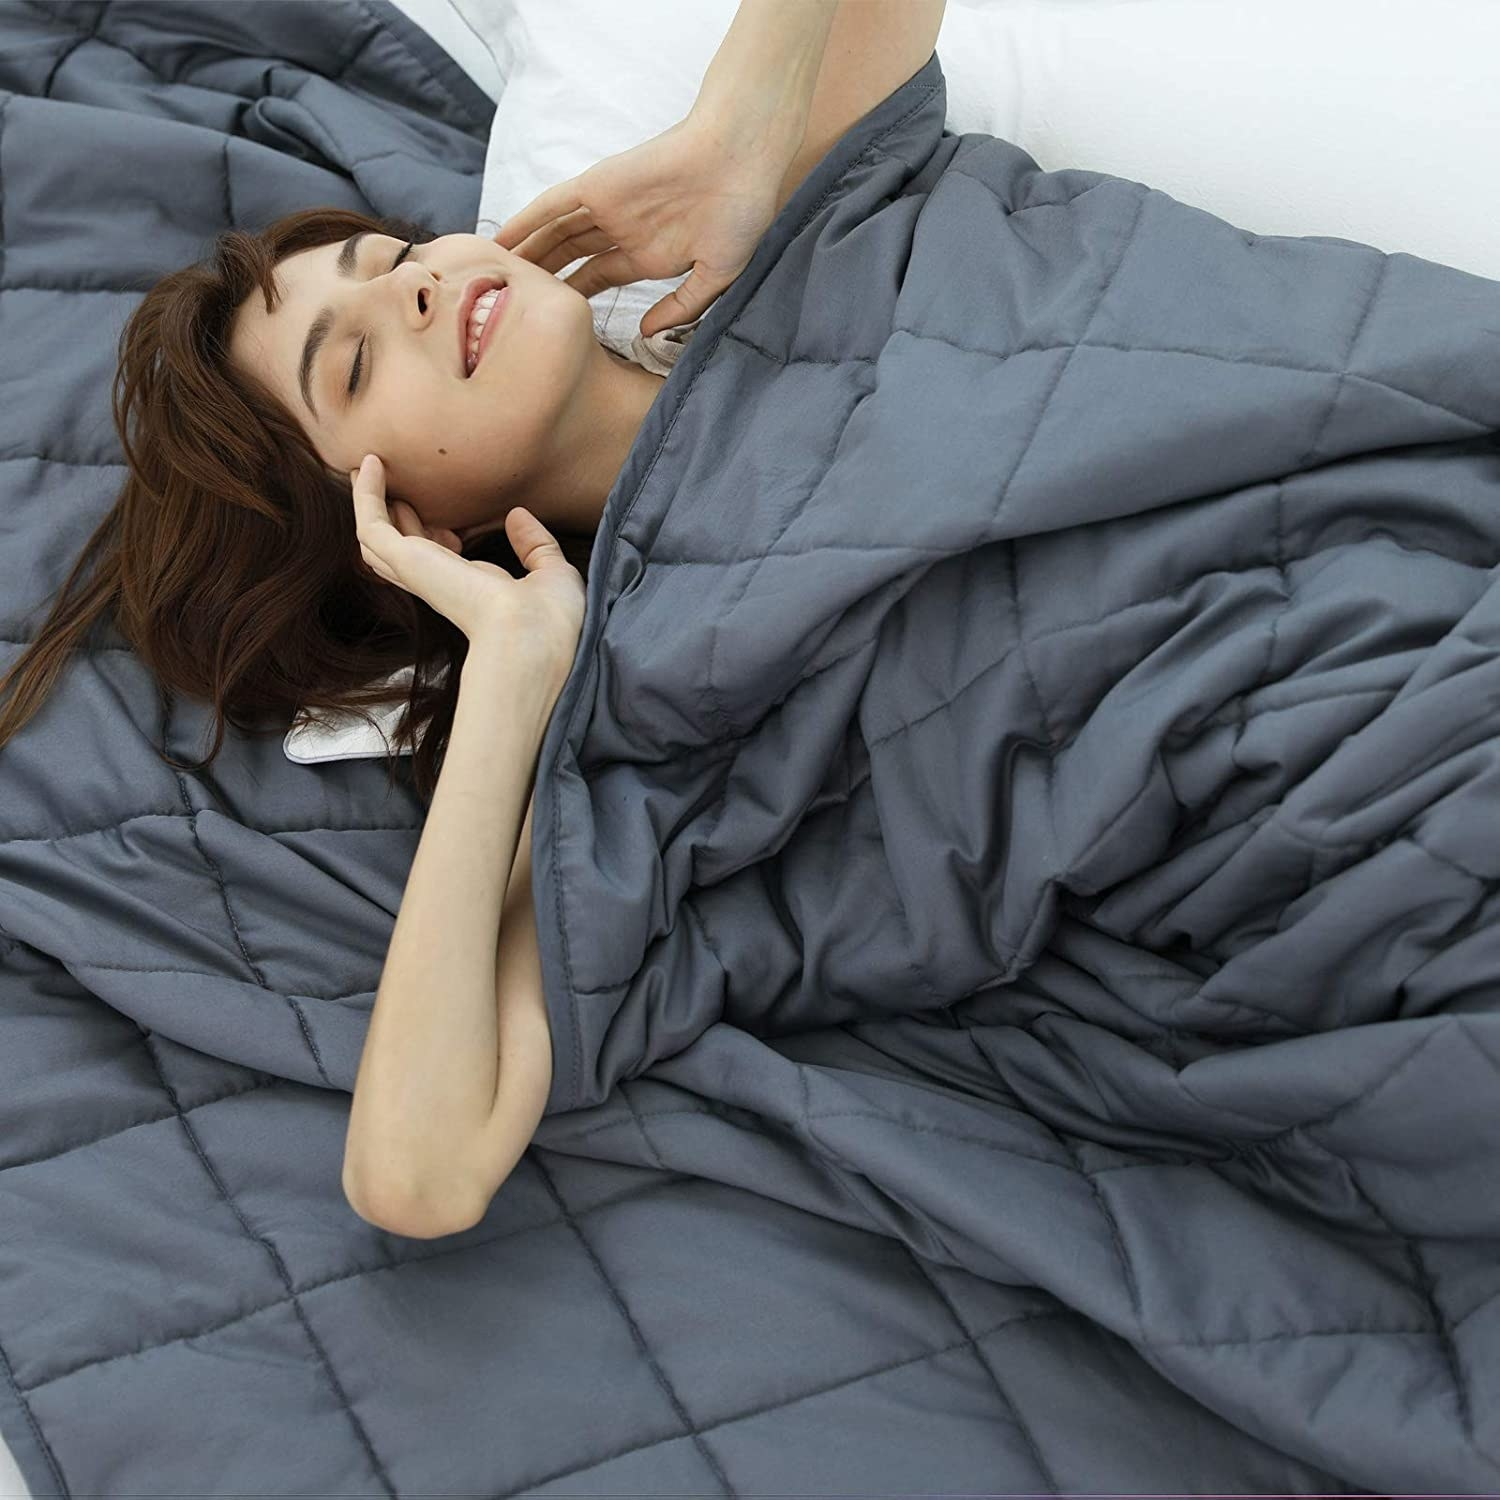 A person swaddled under a weighted blanket